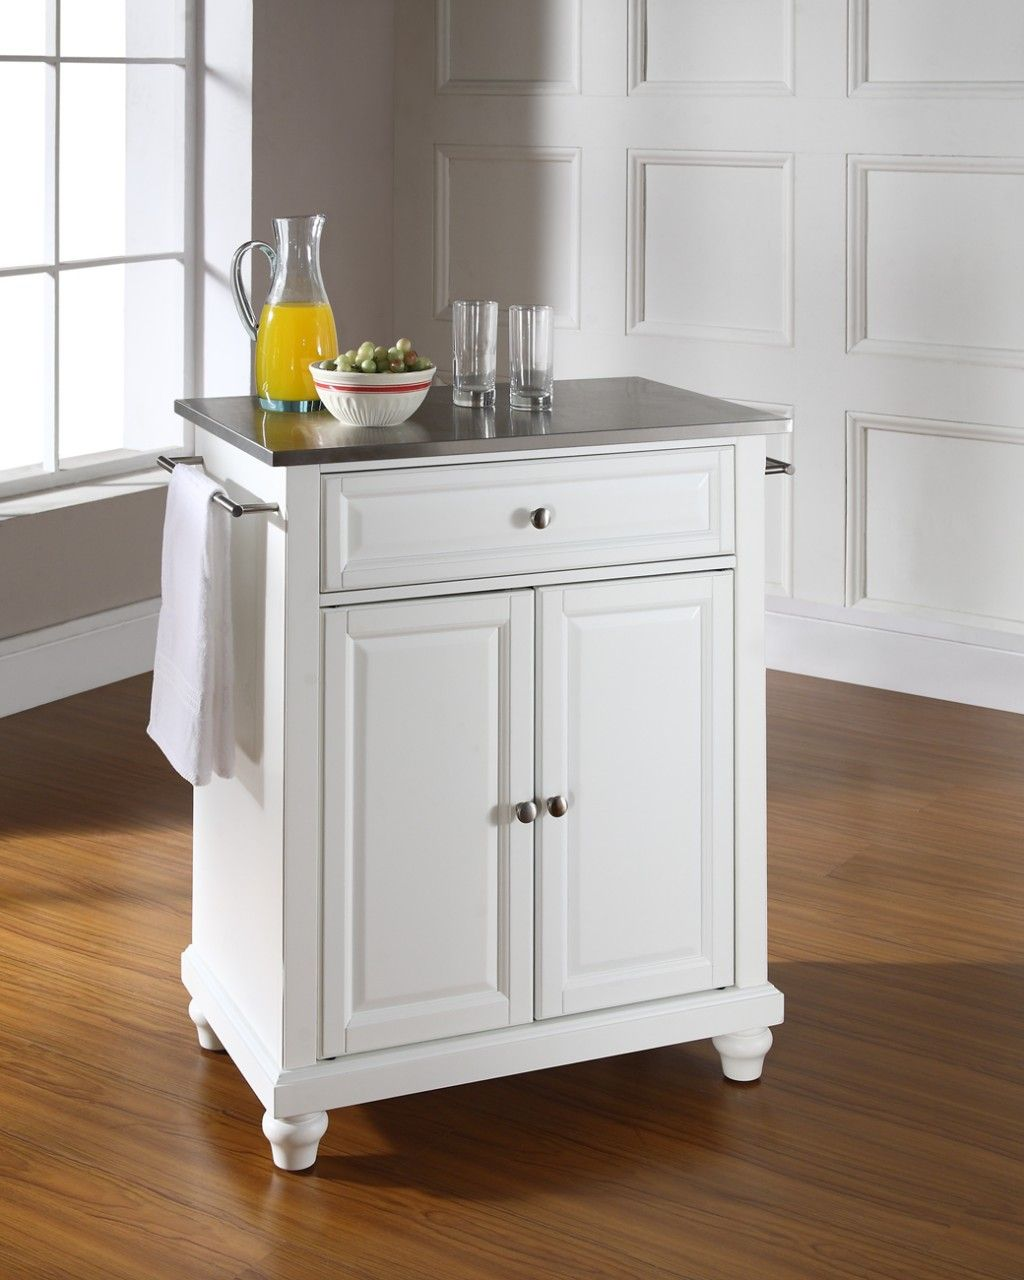 Crosley Cambridge Stainless Steel Portable Kitchen Island in White ...